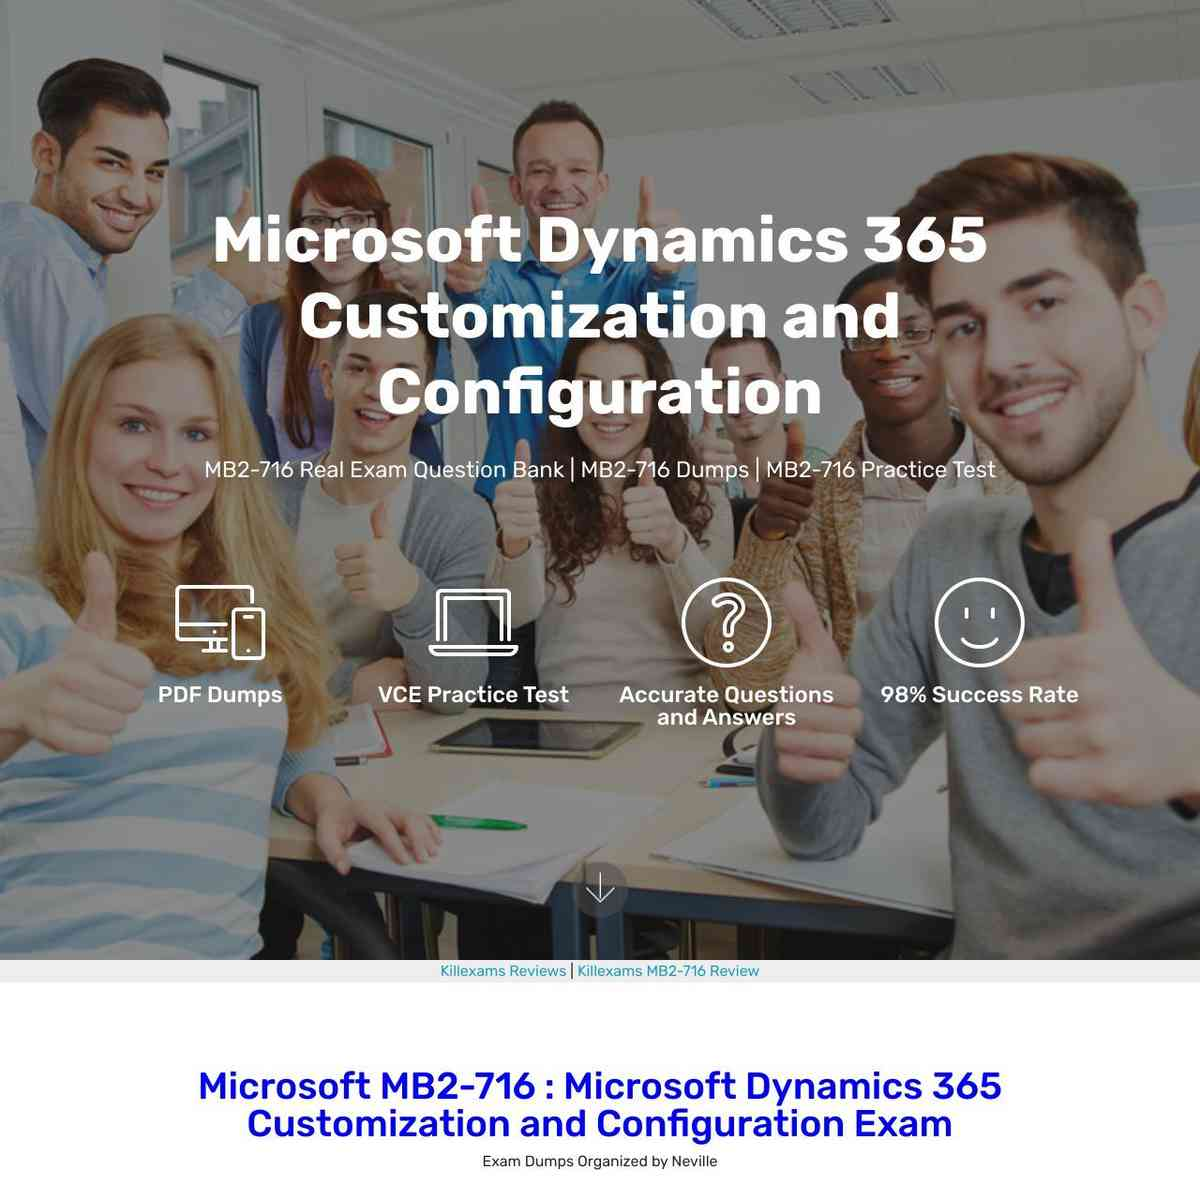 Pass MB2-716 exam at first attempt with these real questions and Latest Topics